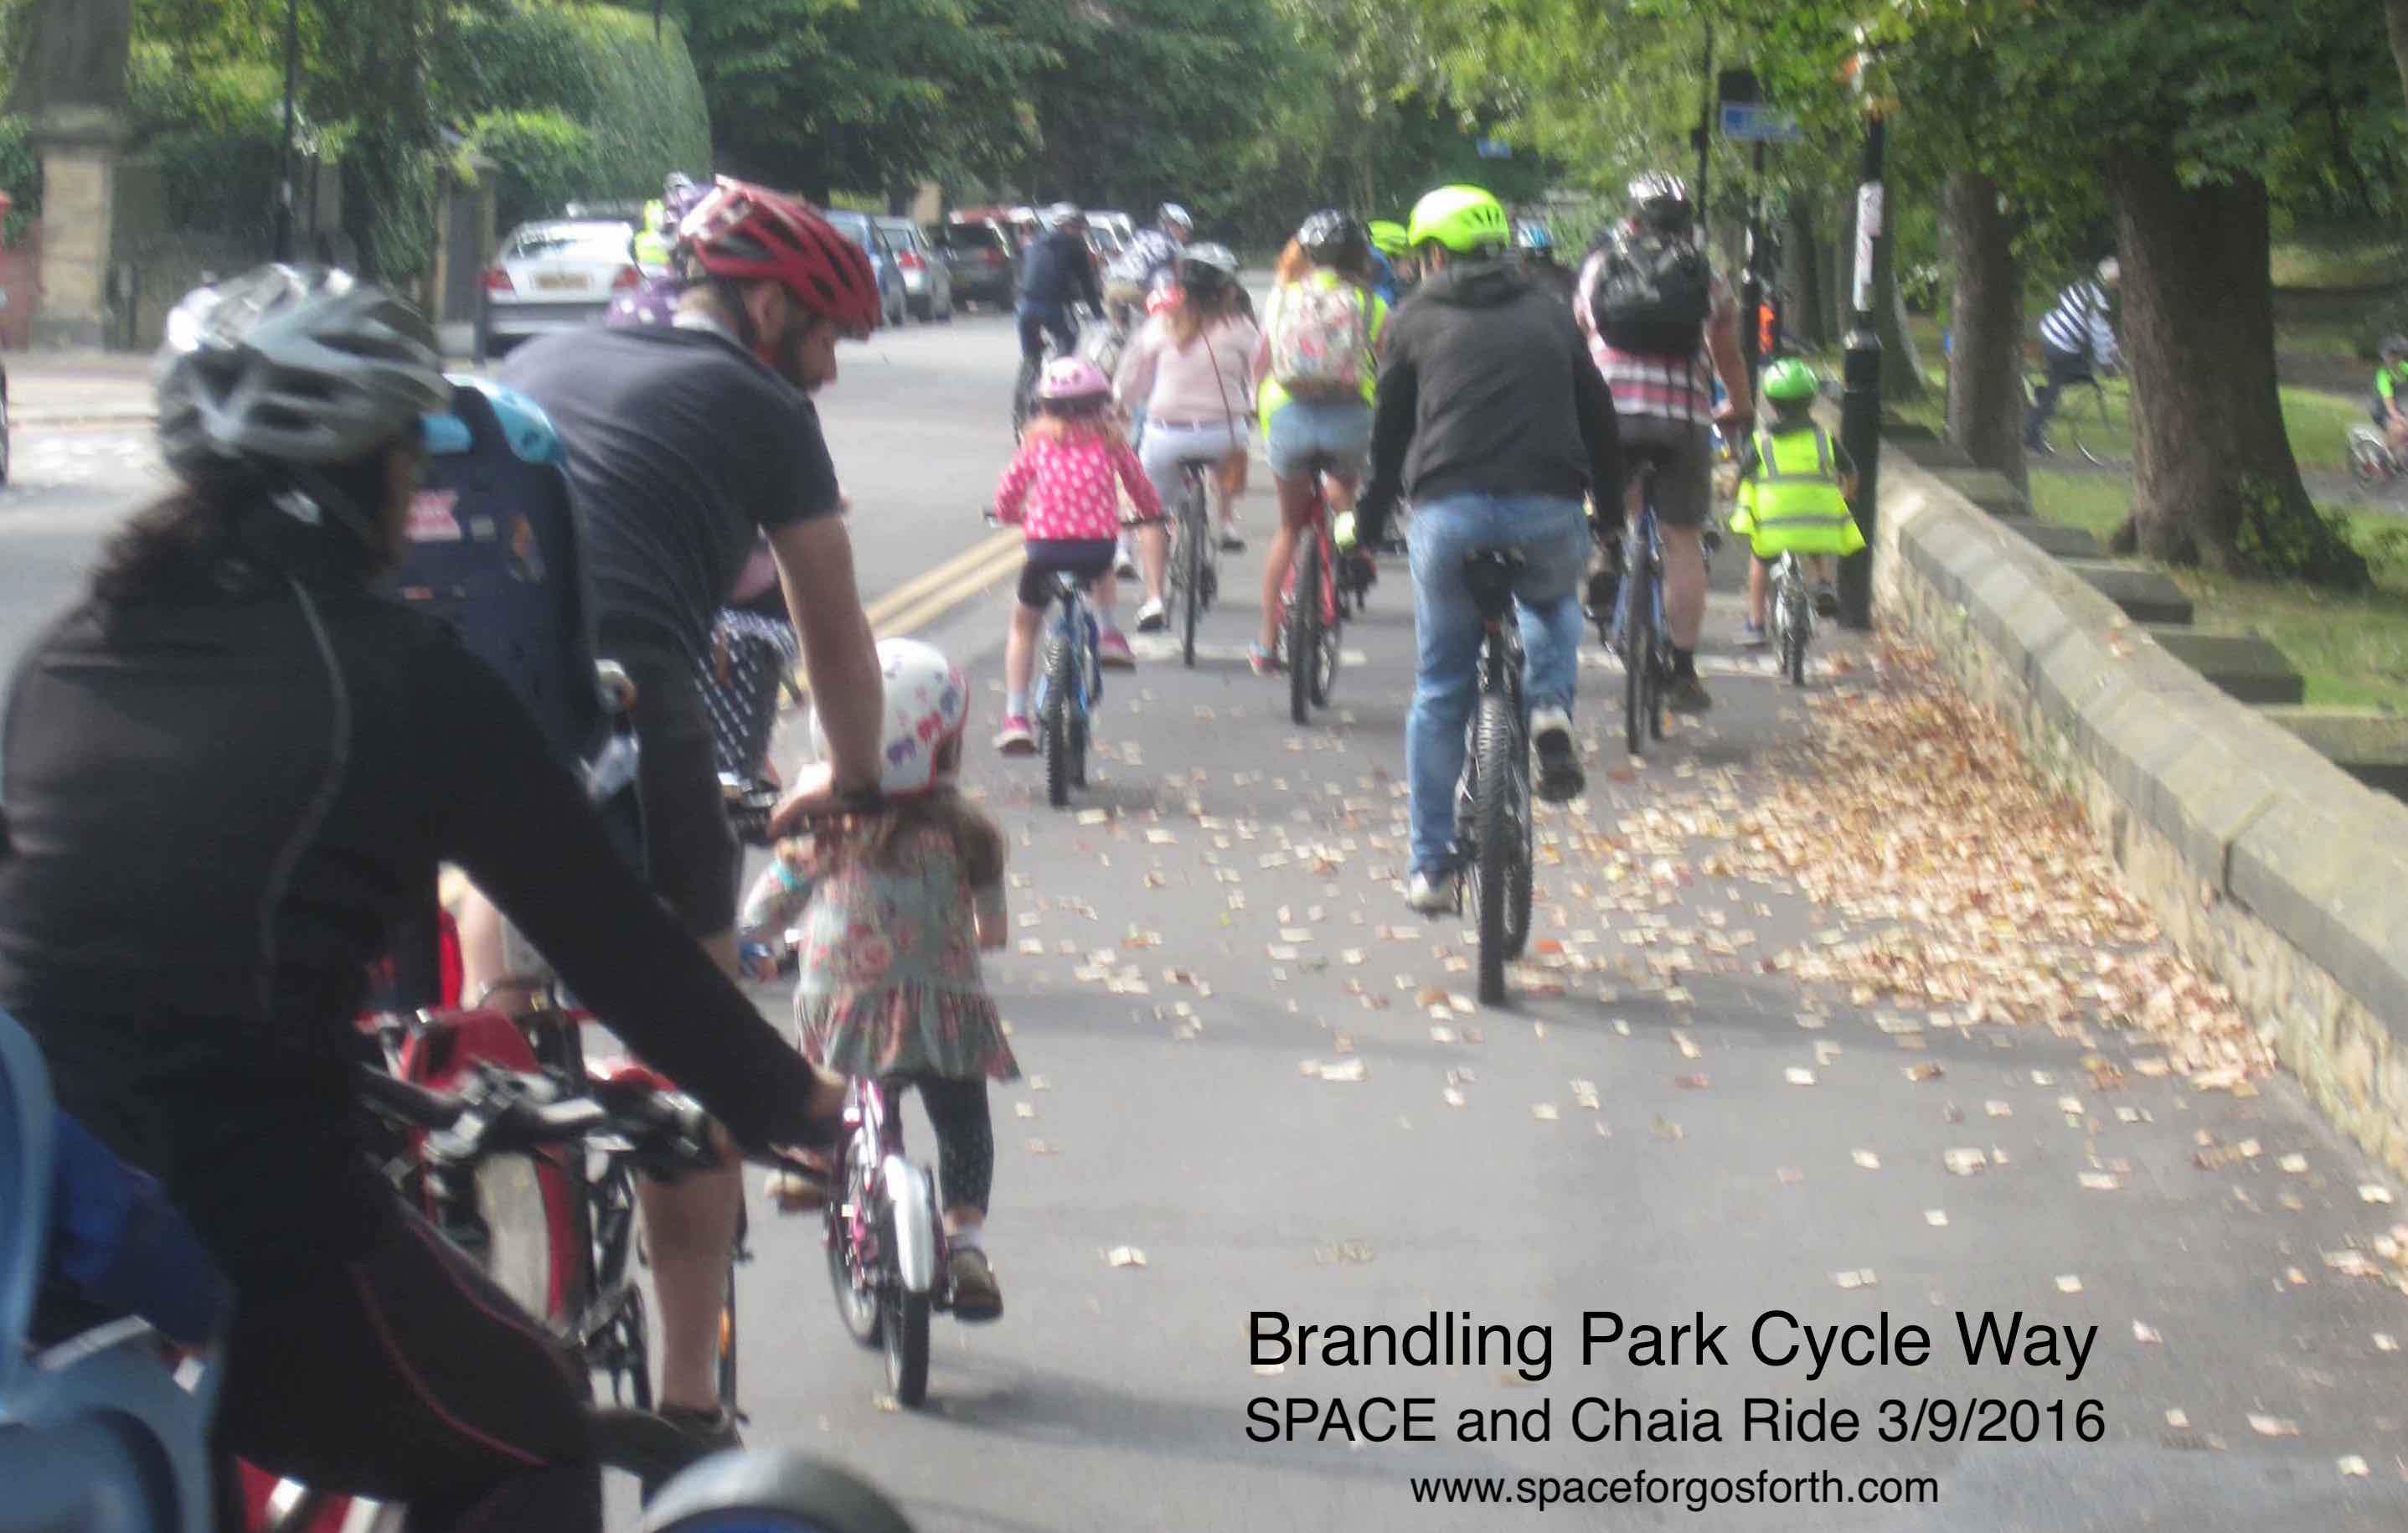 Families cycling along the traffic-free path at Brandling Park in Jesmond.